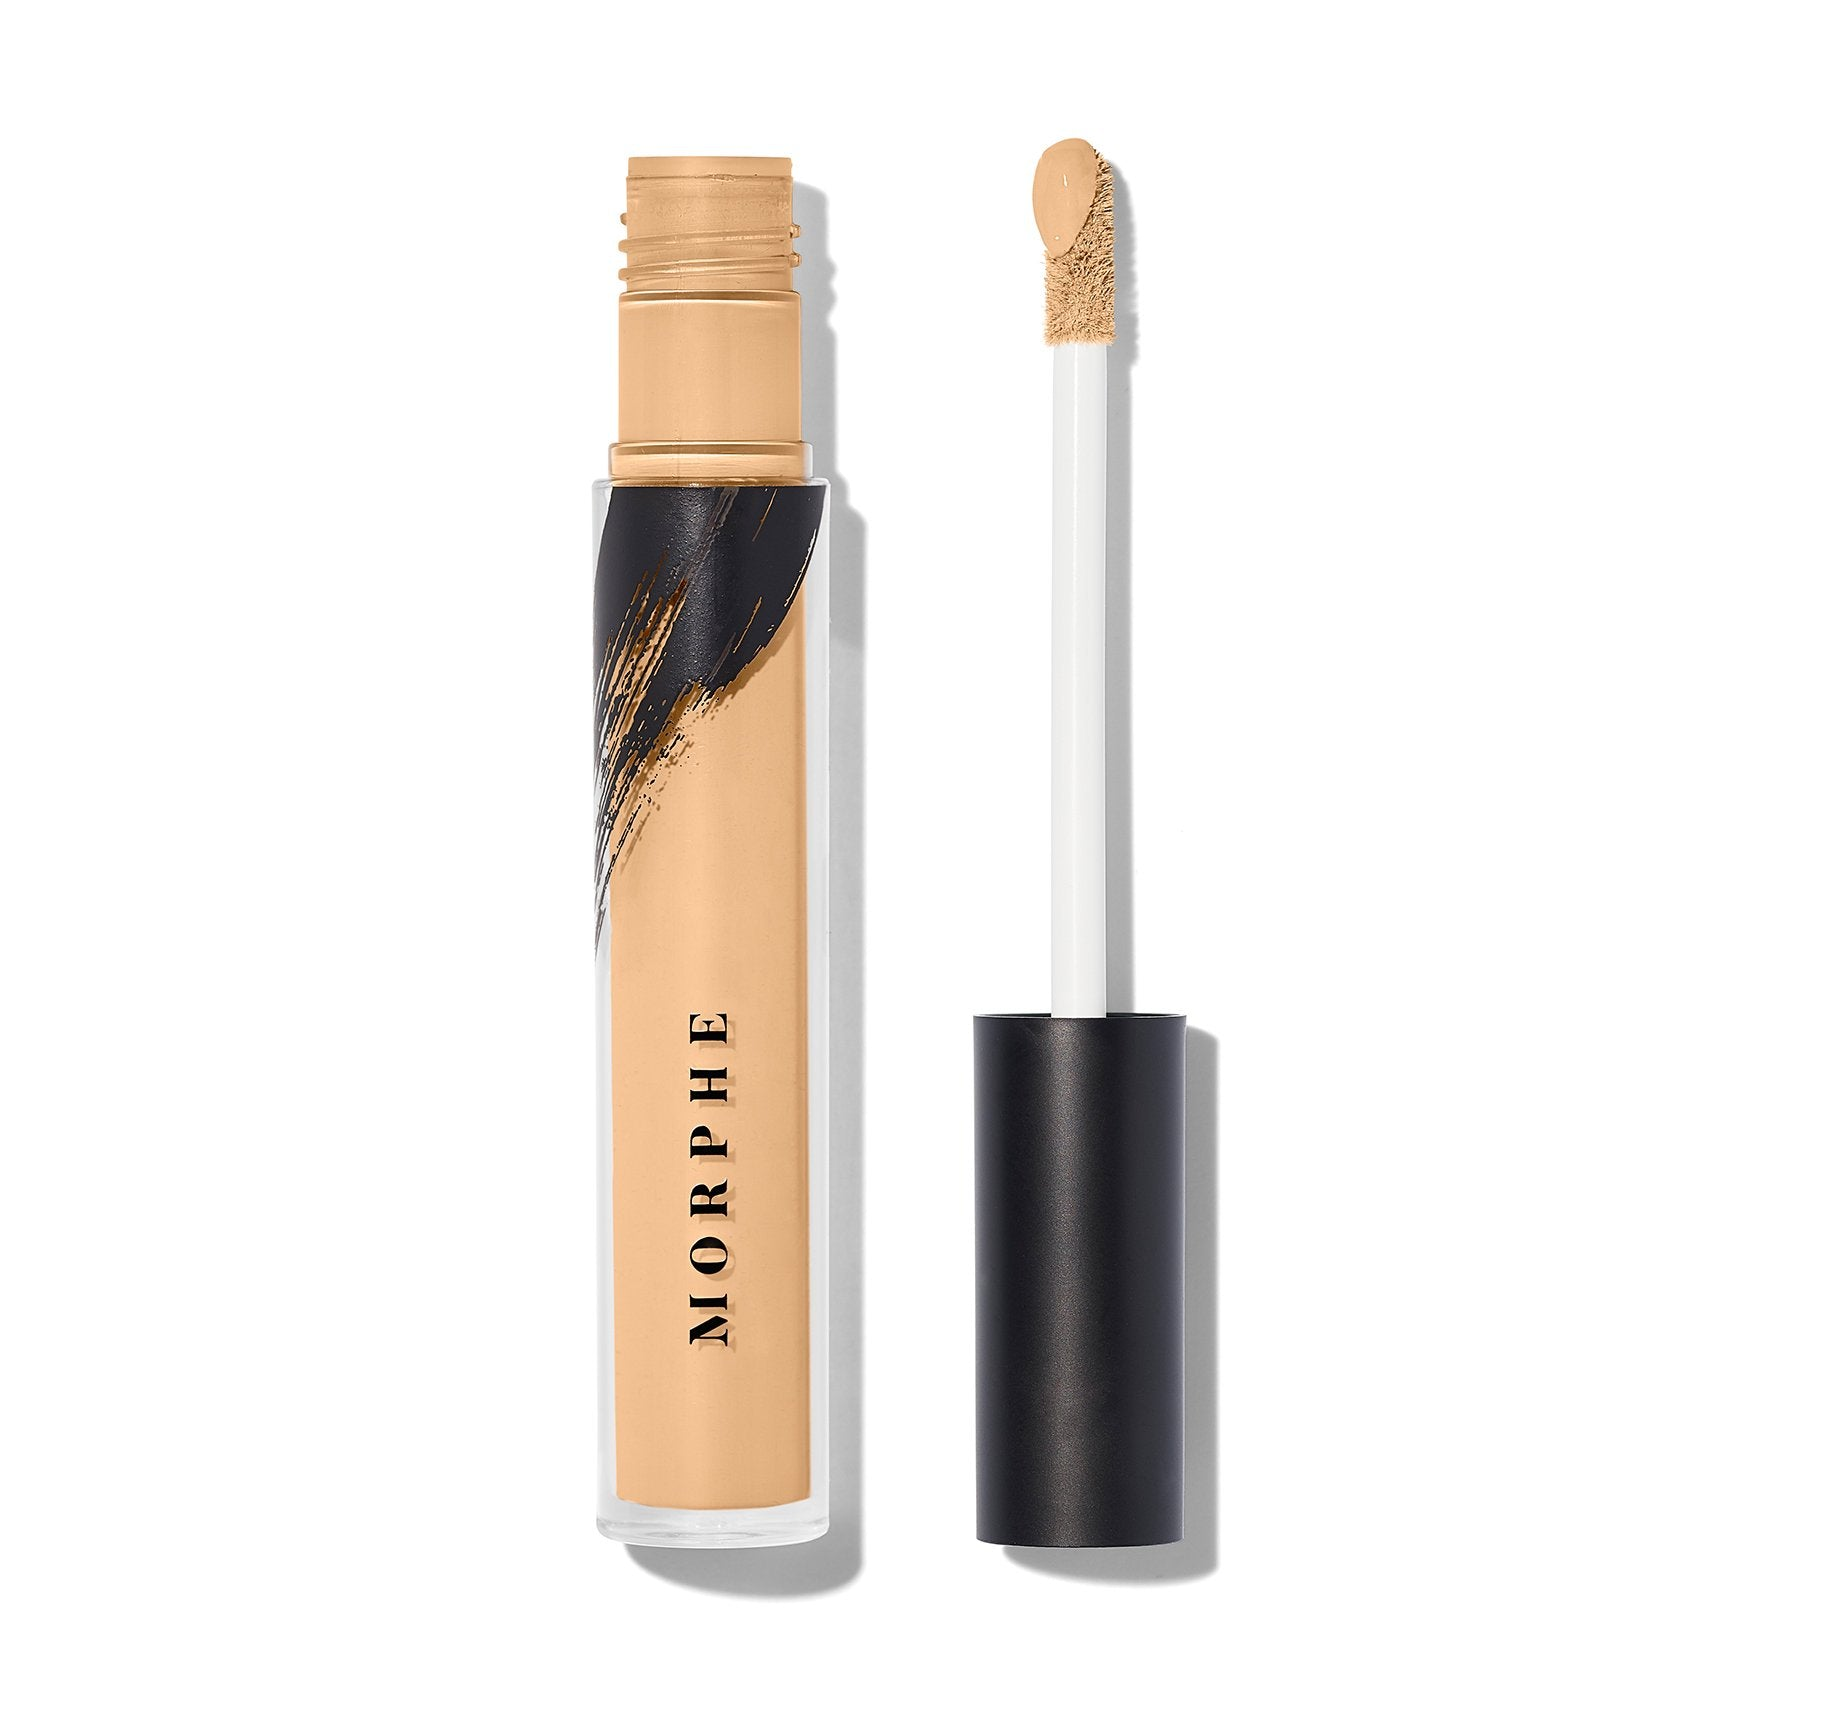 FLUIDITY FULL-COVERAGE CONCEALER - C2.15, view larger image